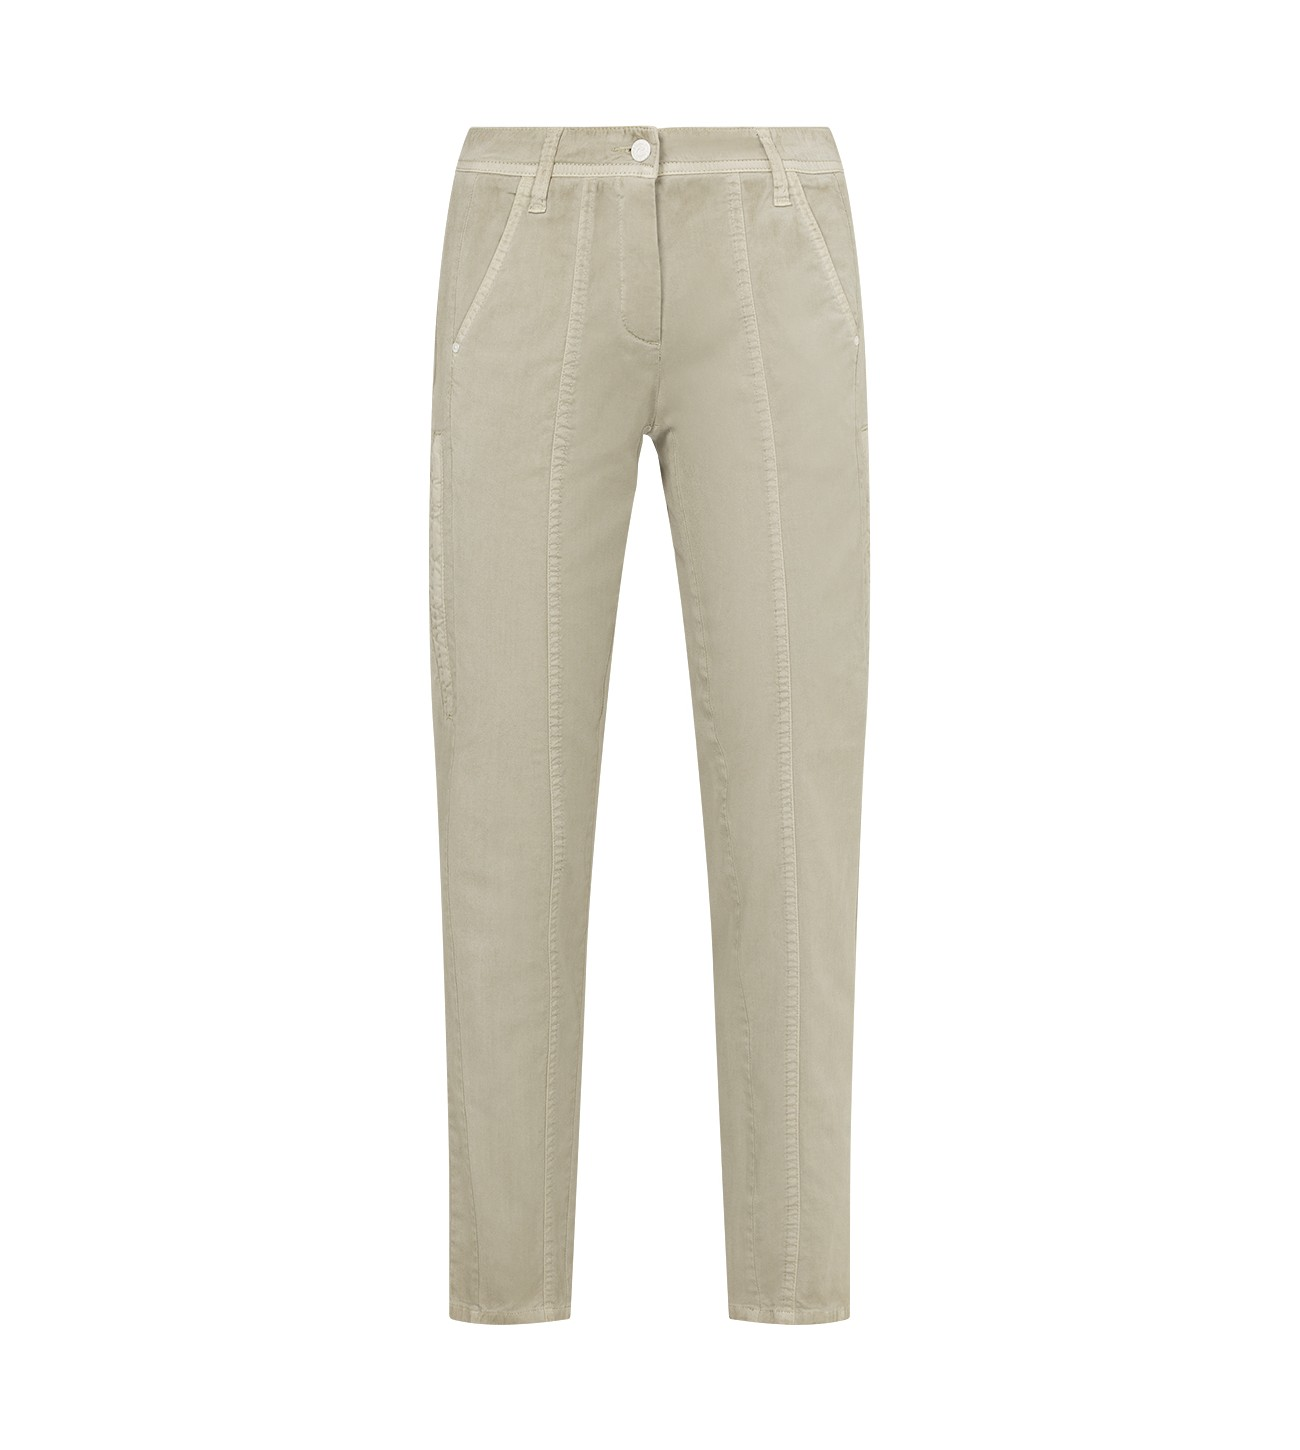 CAMBIO_SKINNY_TROUSERS_WITH_SEAMS_MARIONA_FASHION_CLOTHING_WOMAN_SHOP_ONLINE_0273/02